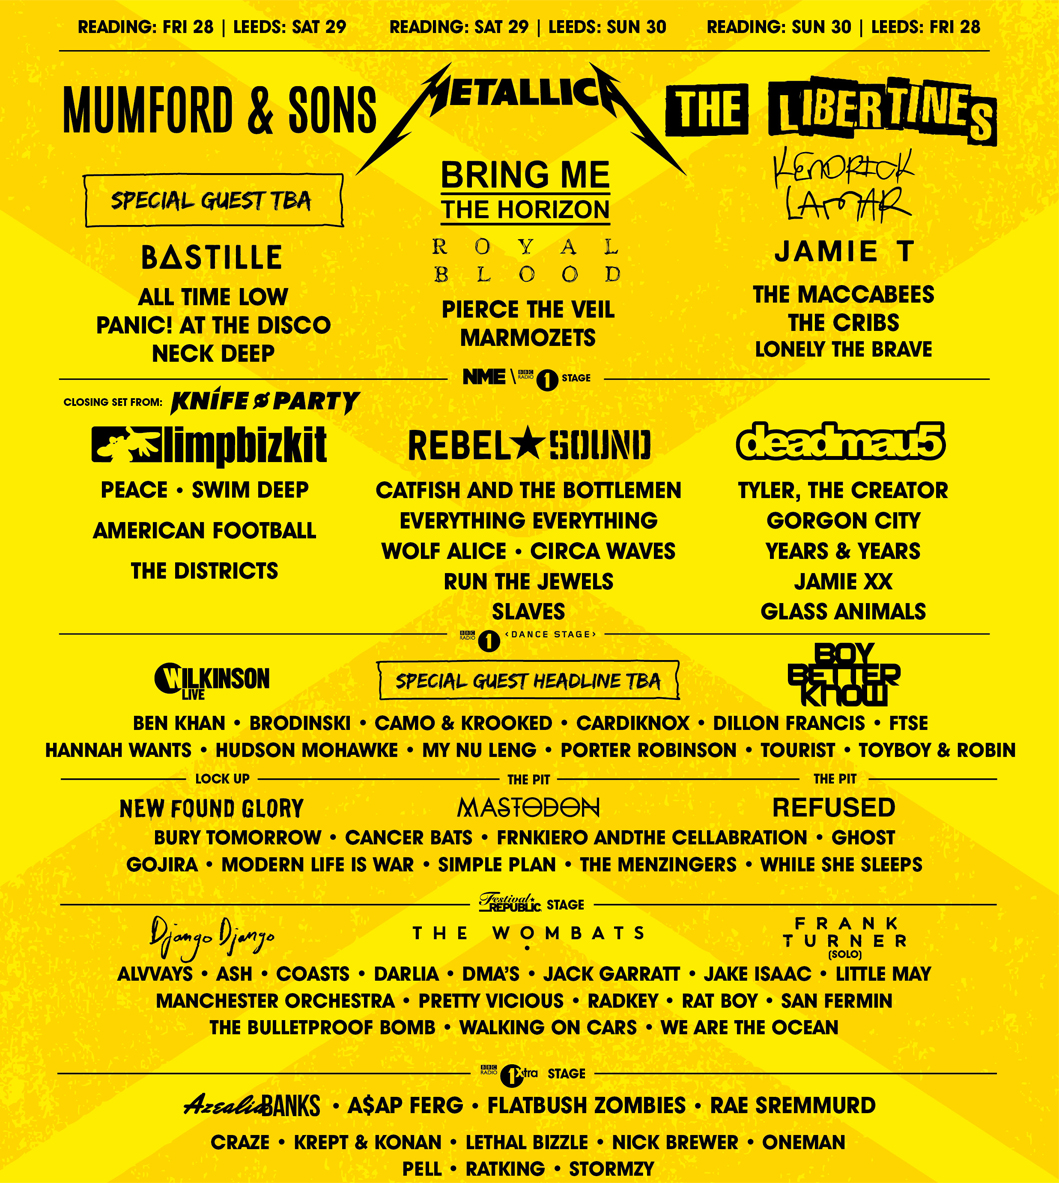 Leeds Festival Line Up 2015. Find out who's playing Leeds 2015